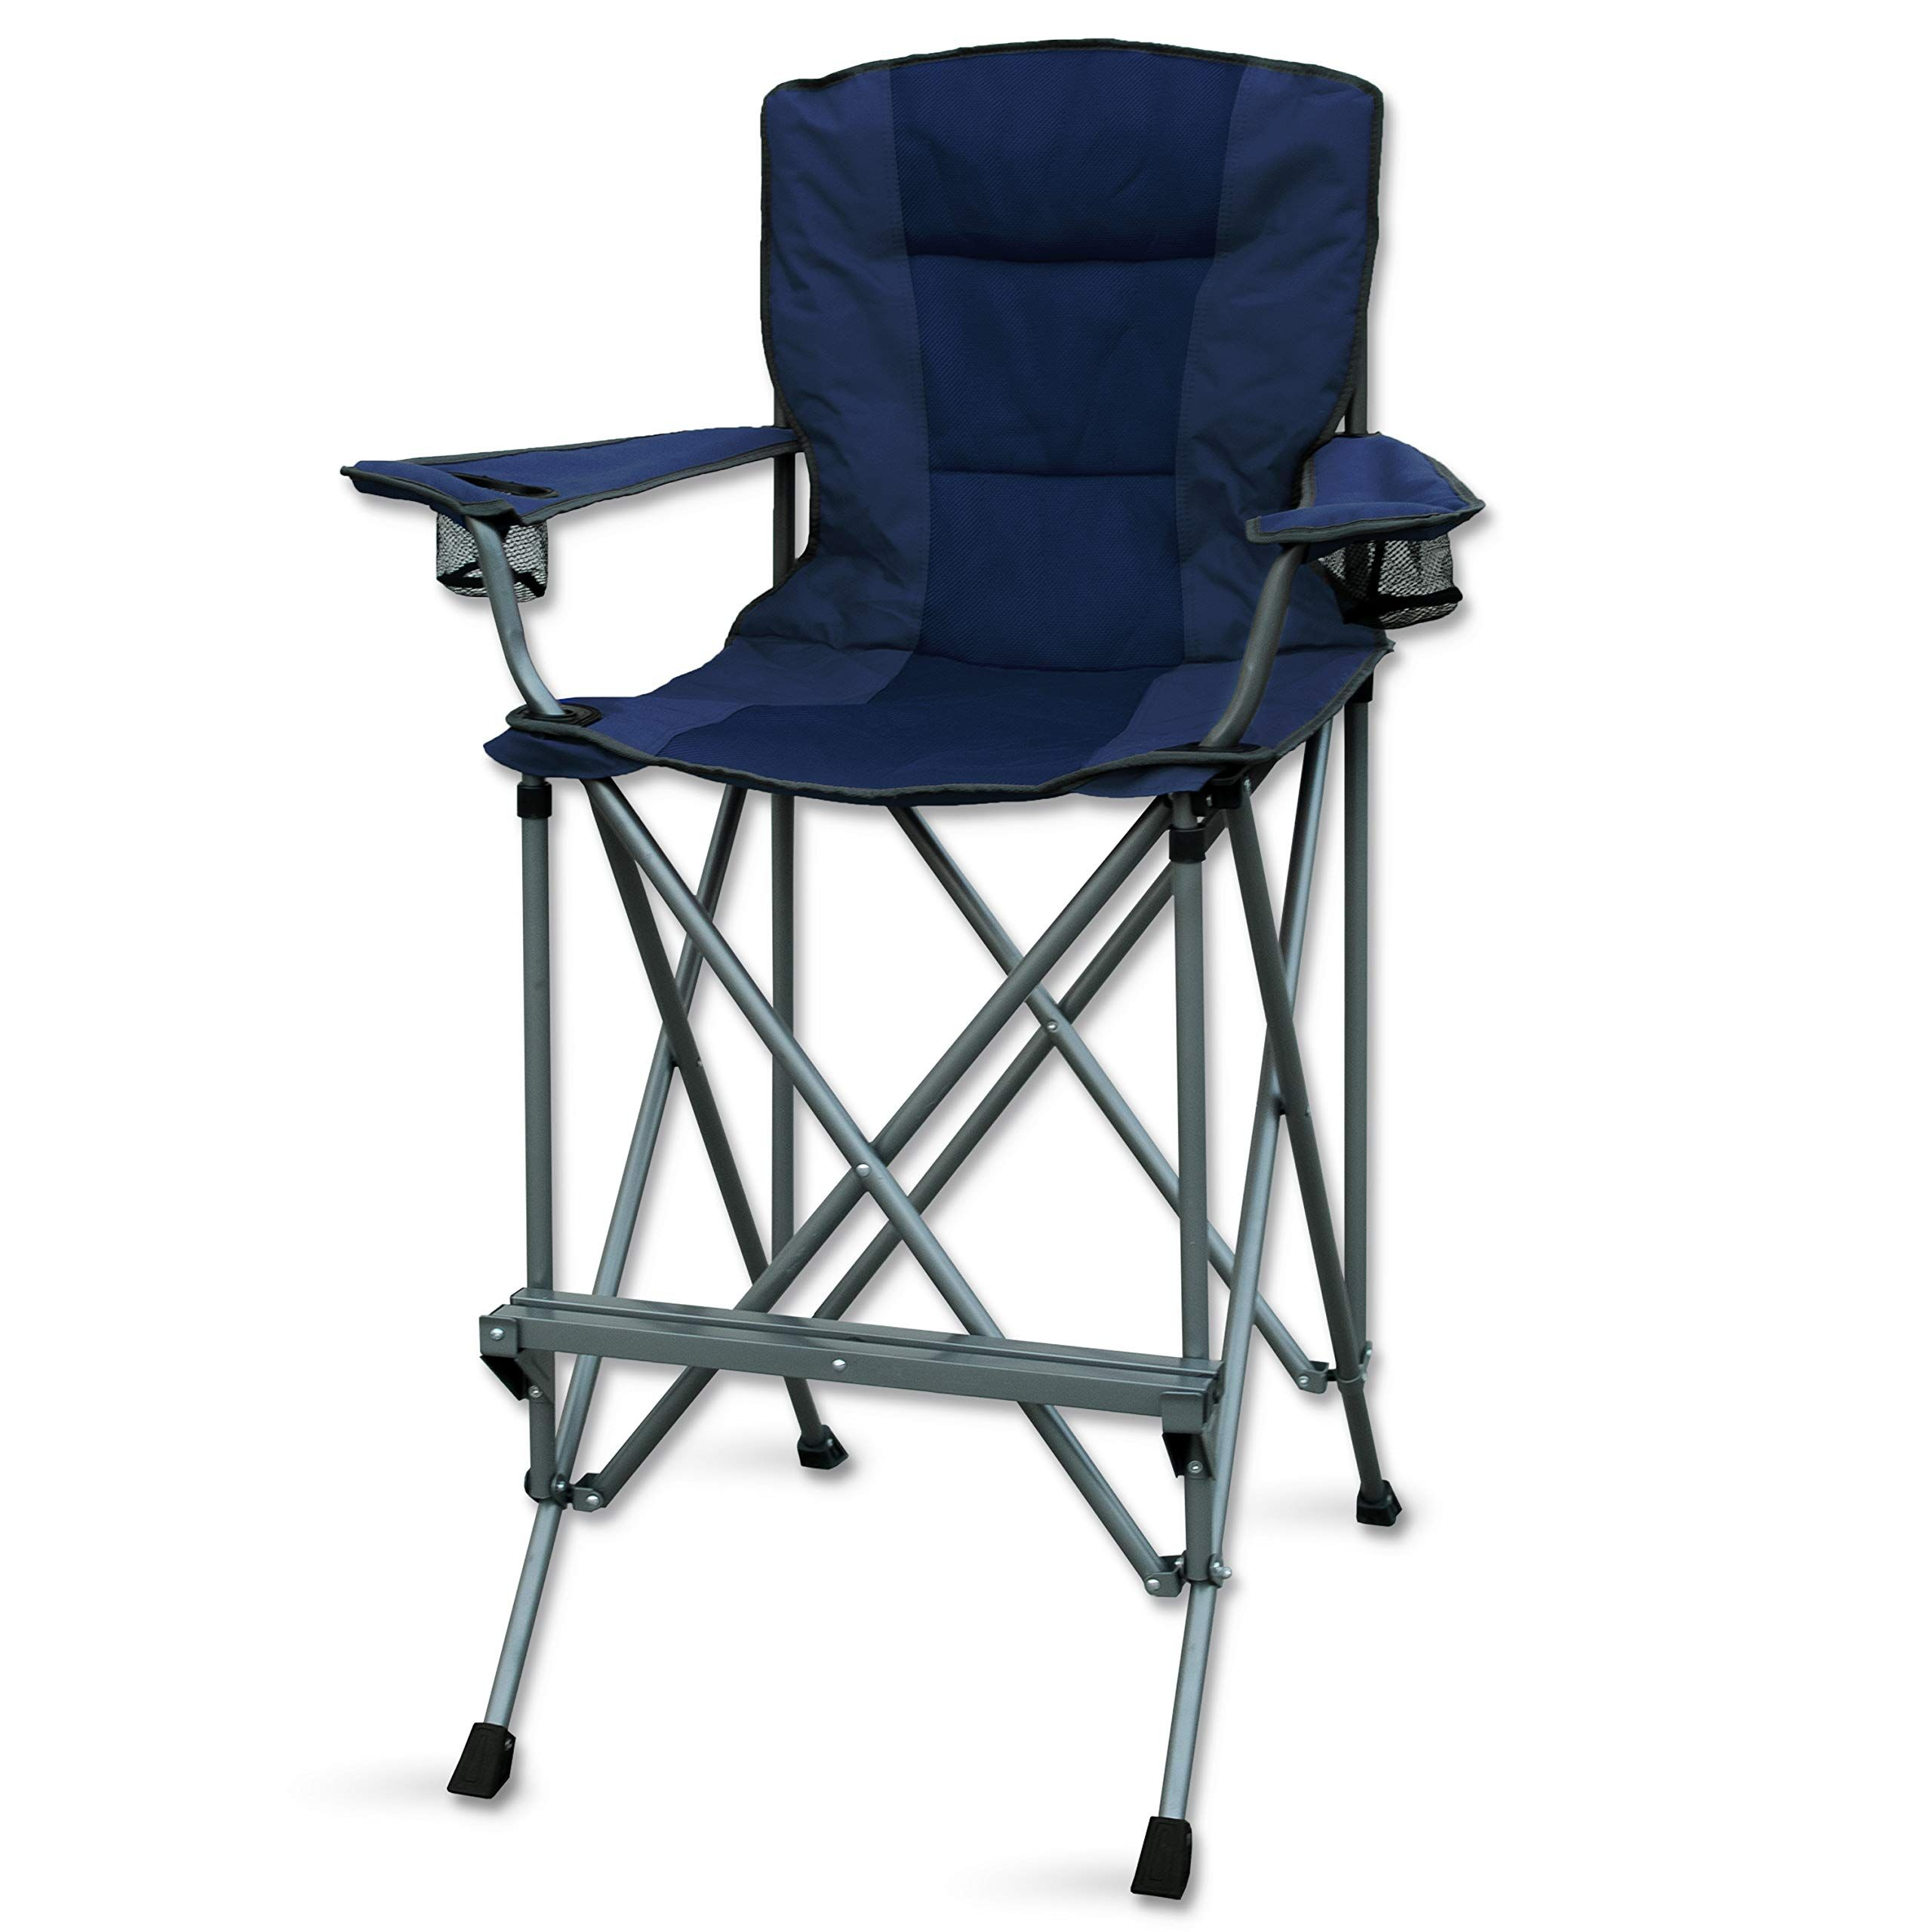 Rms Outdoors Extra Tall Folding Chair Bar Height Director Chair For Camping Home Patio And Sports Por In 2020 Folding Chair Directors Chair Outdoor Folding Chairs